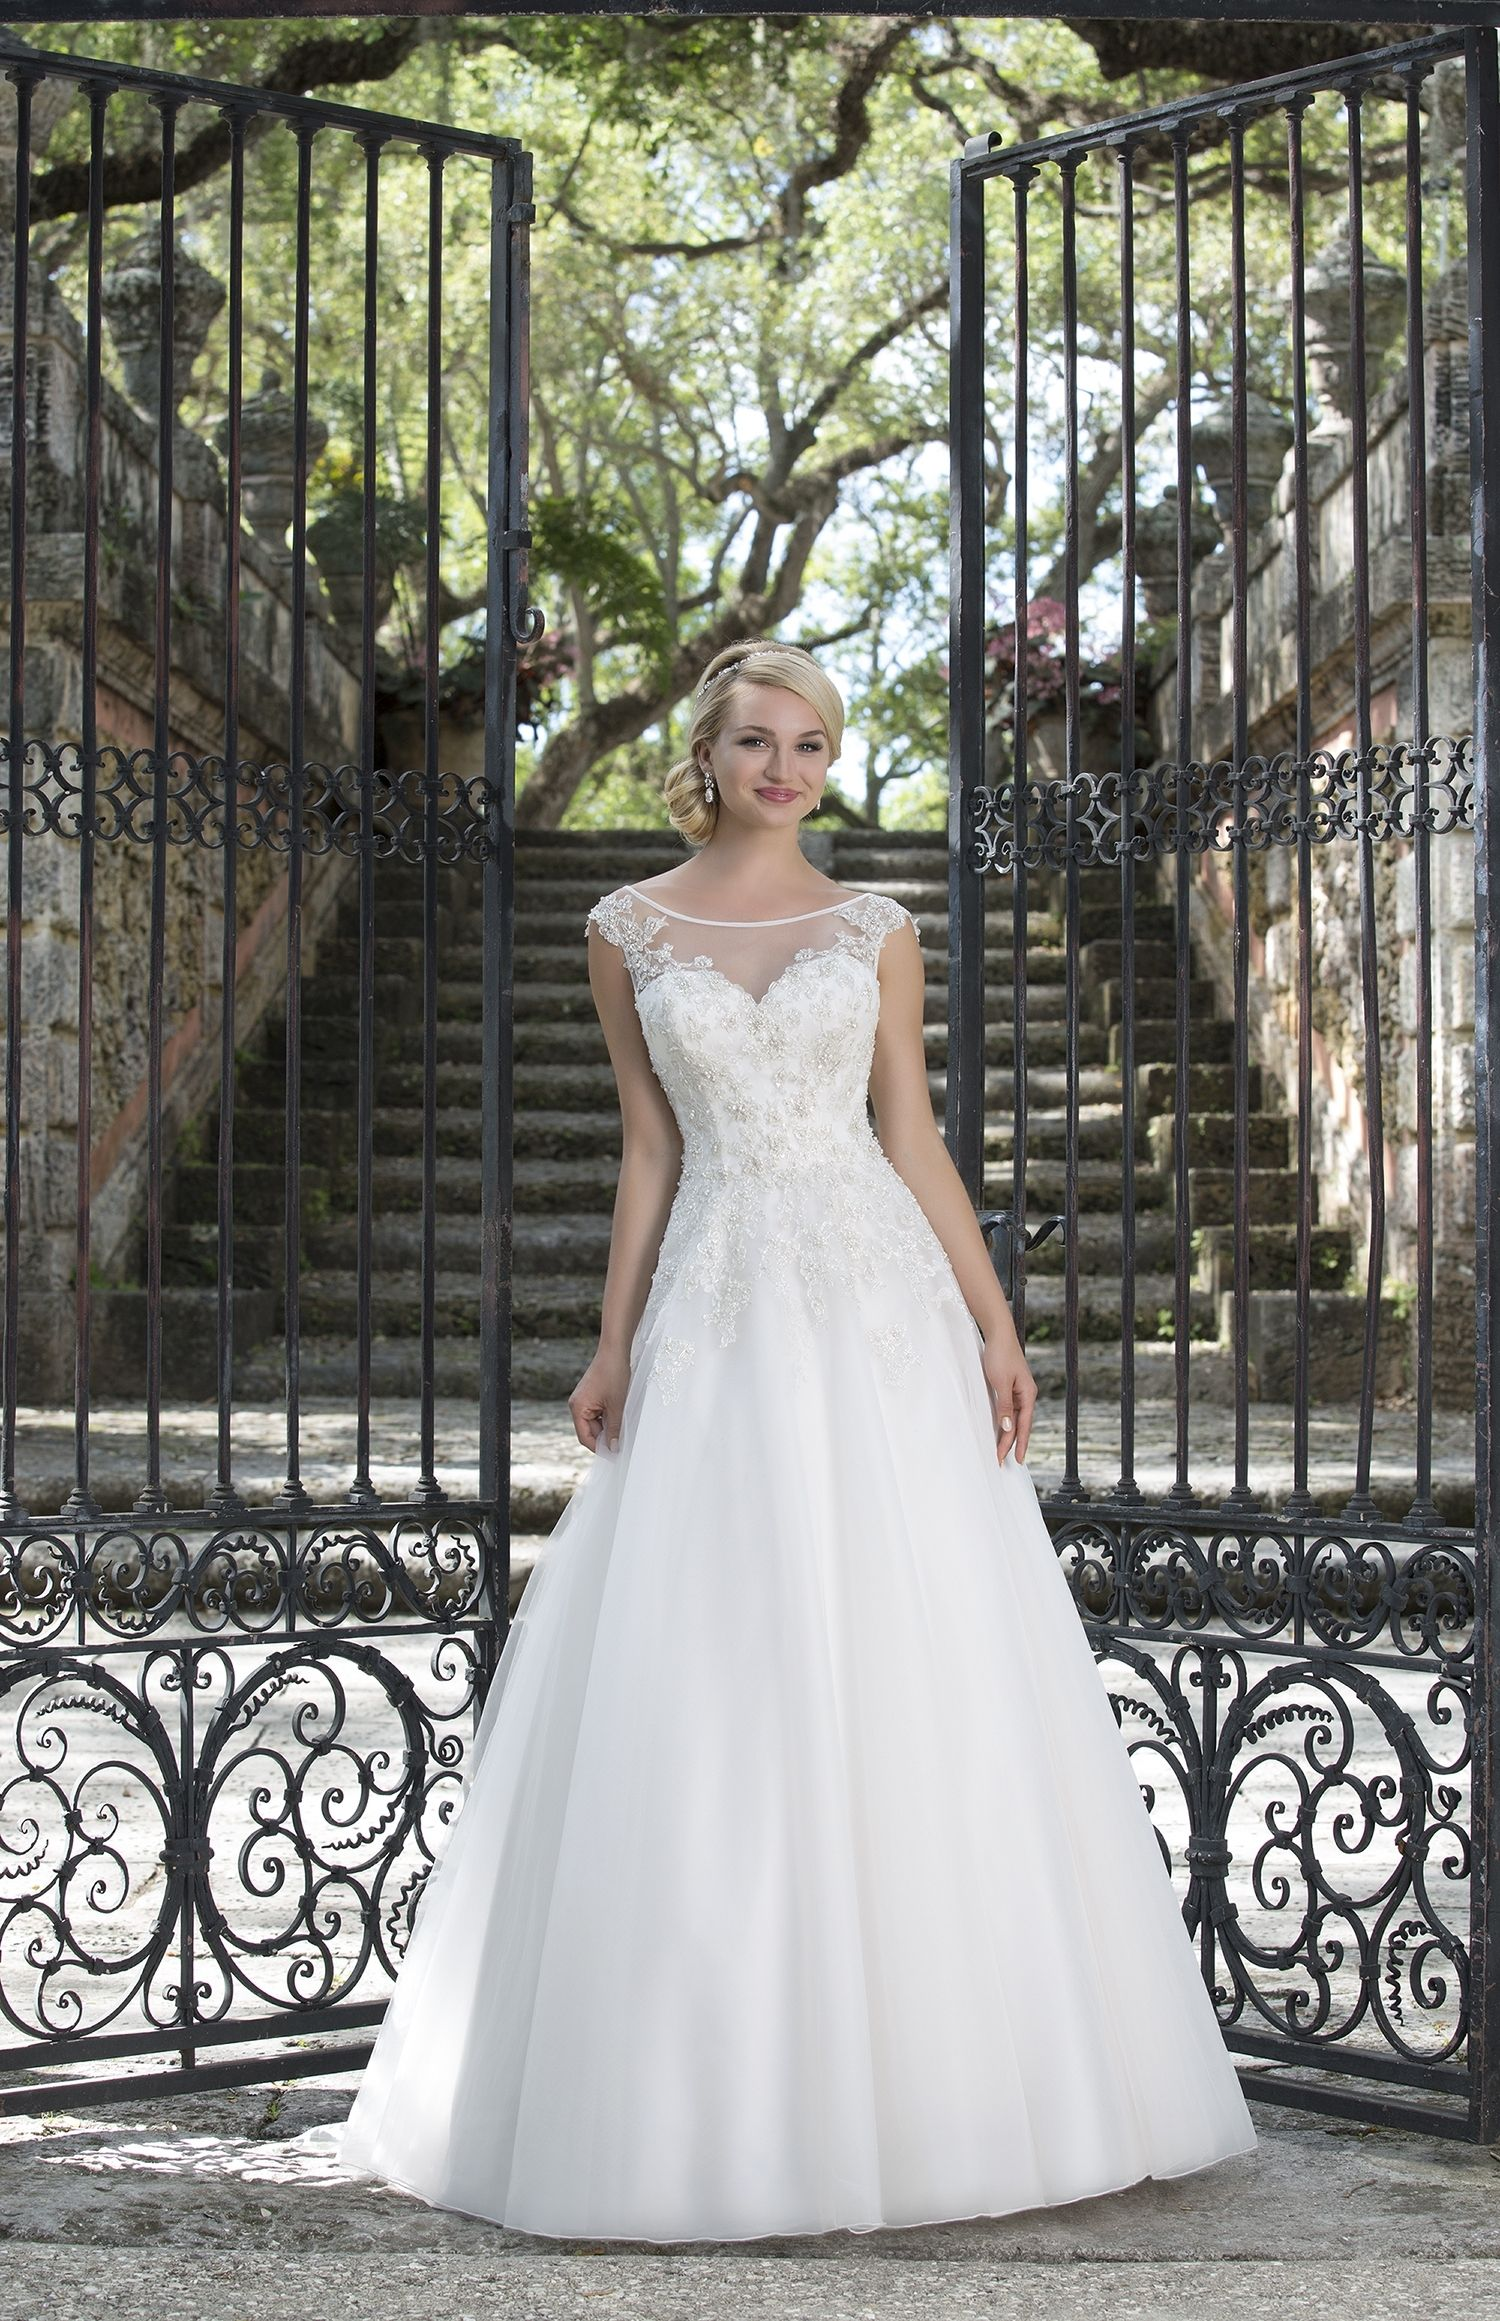 Wedding Dresses West Des Moines Iowa